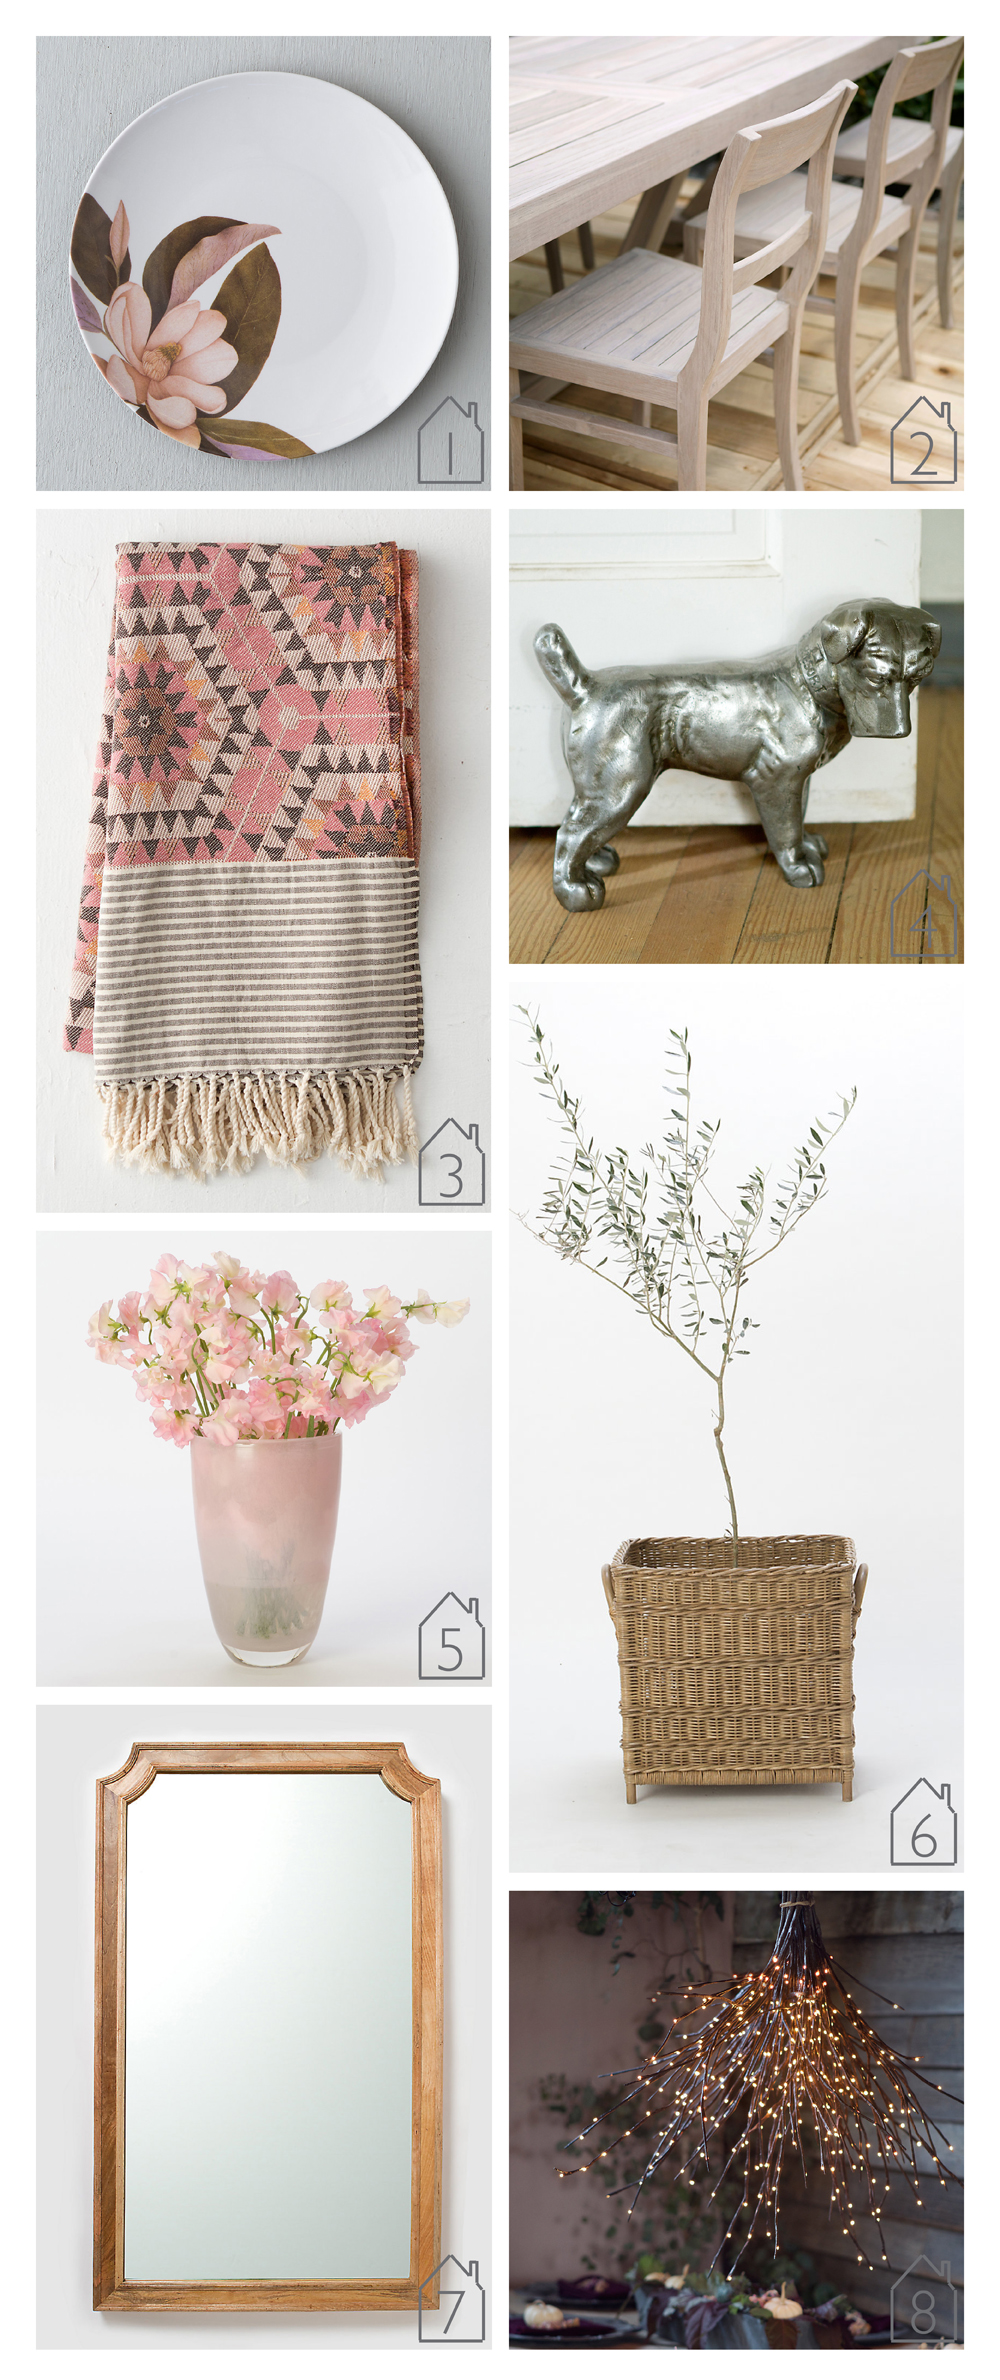 1.  Blooming Magnolia Melamine Plate   2.  Noni Dining Chair   3.  Honeycomb Cotton Throw   4.  Doggy Doorstop   5.  Stone and Glass Vase   6.  Cube Plant Basket   7.  Cut Corners Mirror   8.  Twig Lights